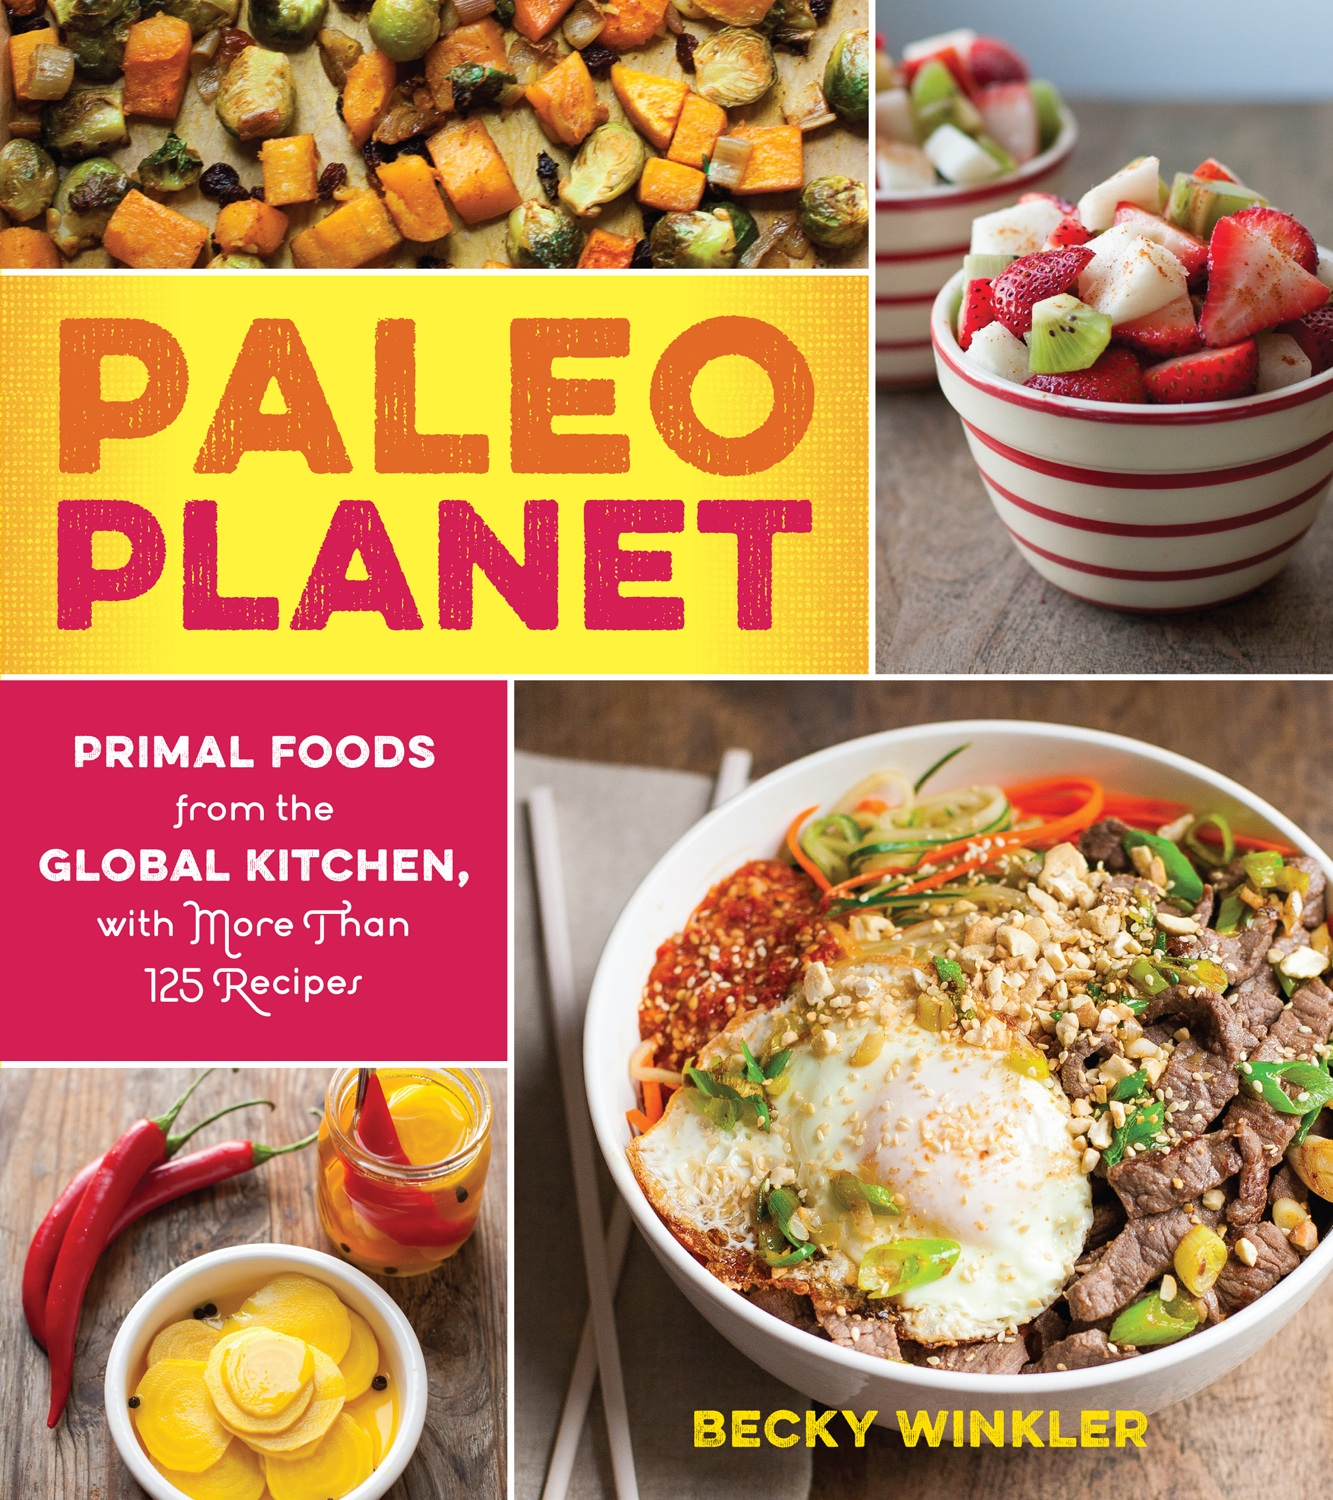 Paleo Planet by Becky Winkler